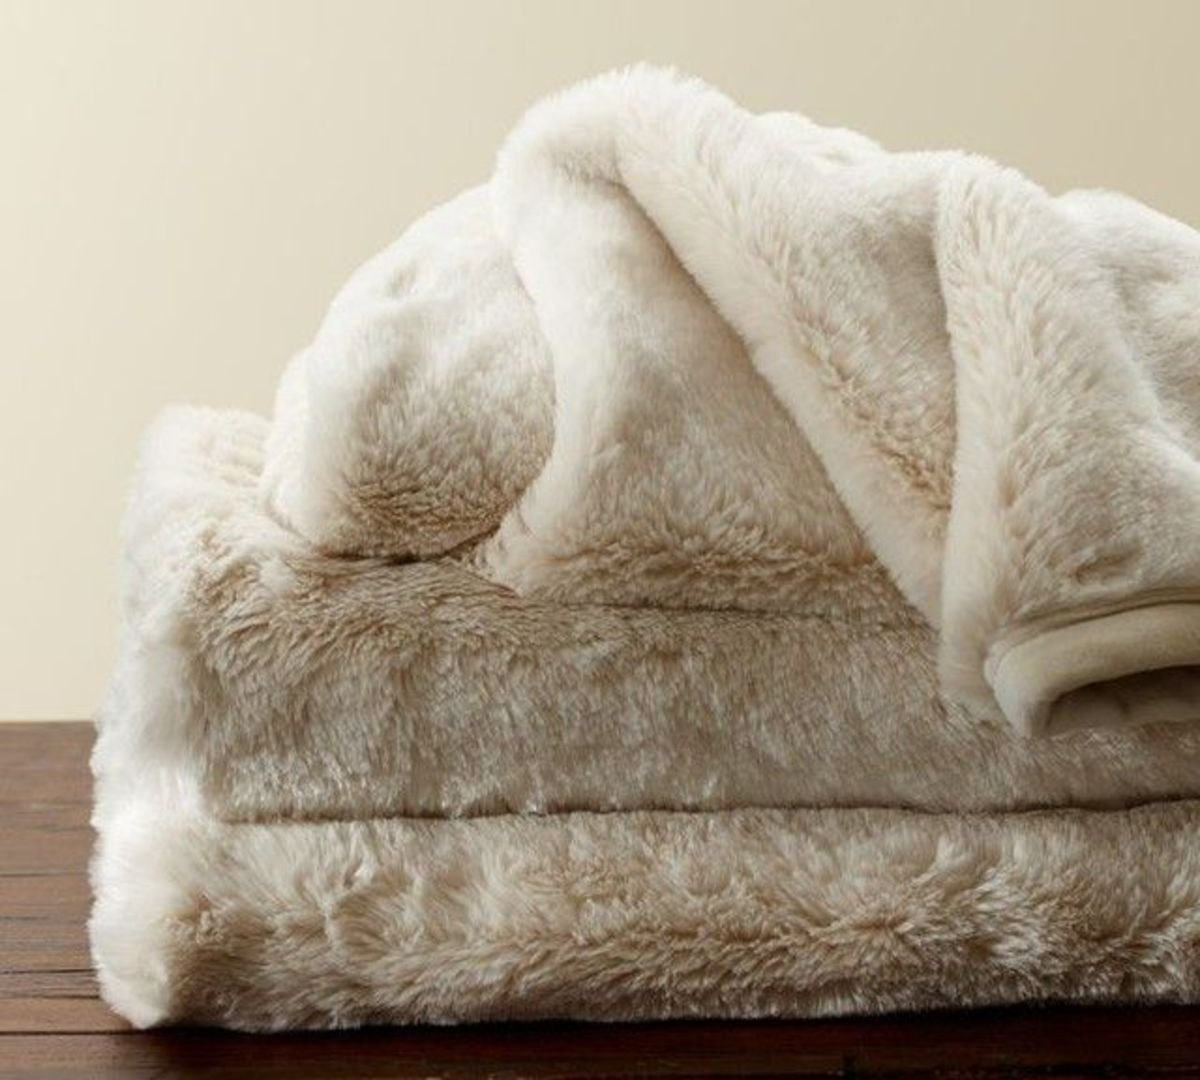 Get cozy with a soft blanket.